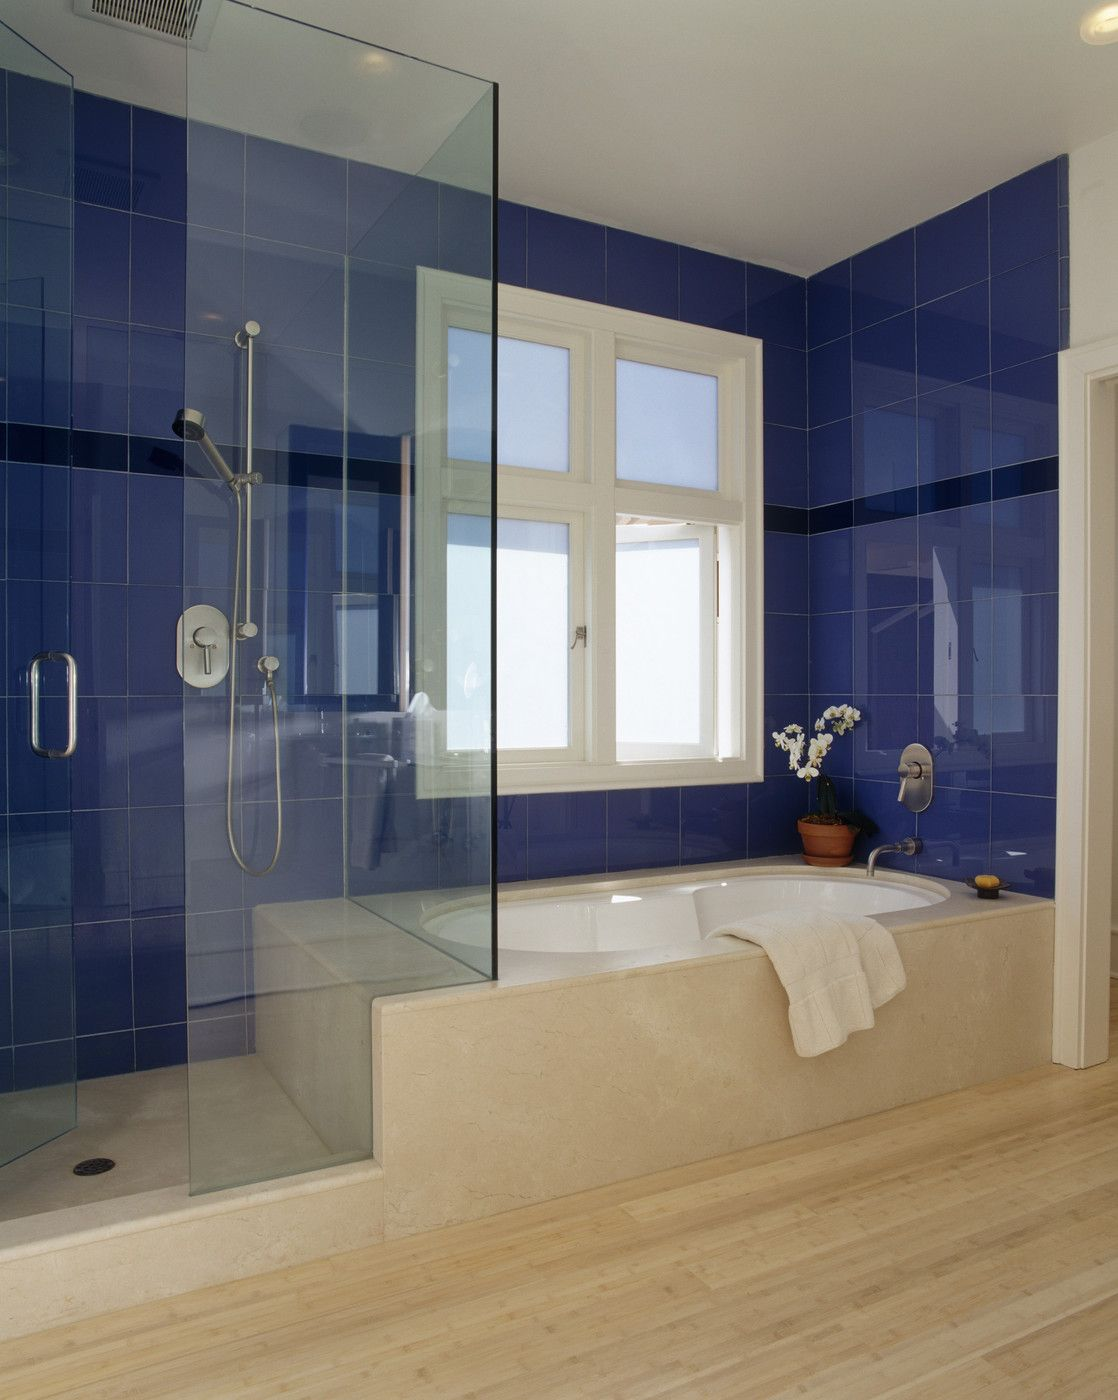 Marble Party | Pinterest | Blue tiles, Bathroom photos and Large ...